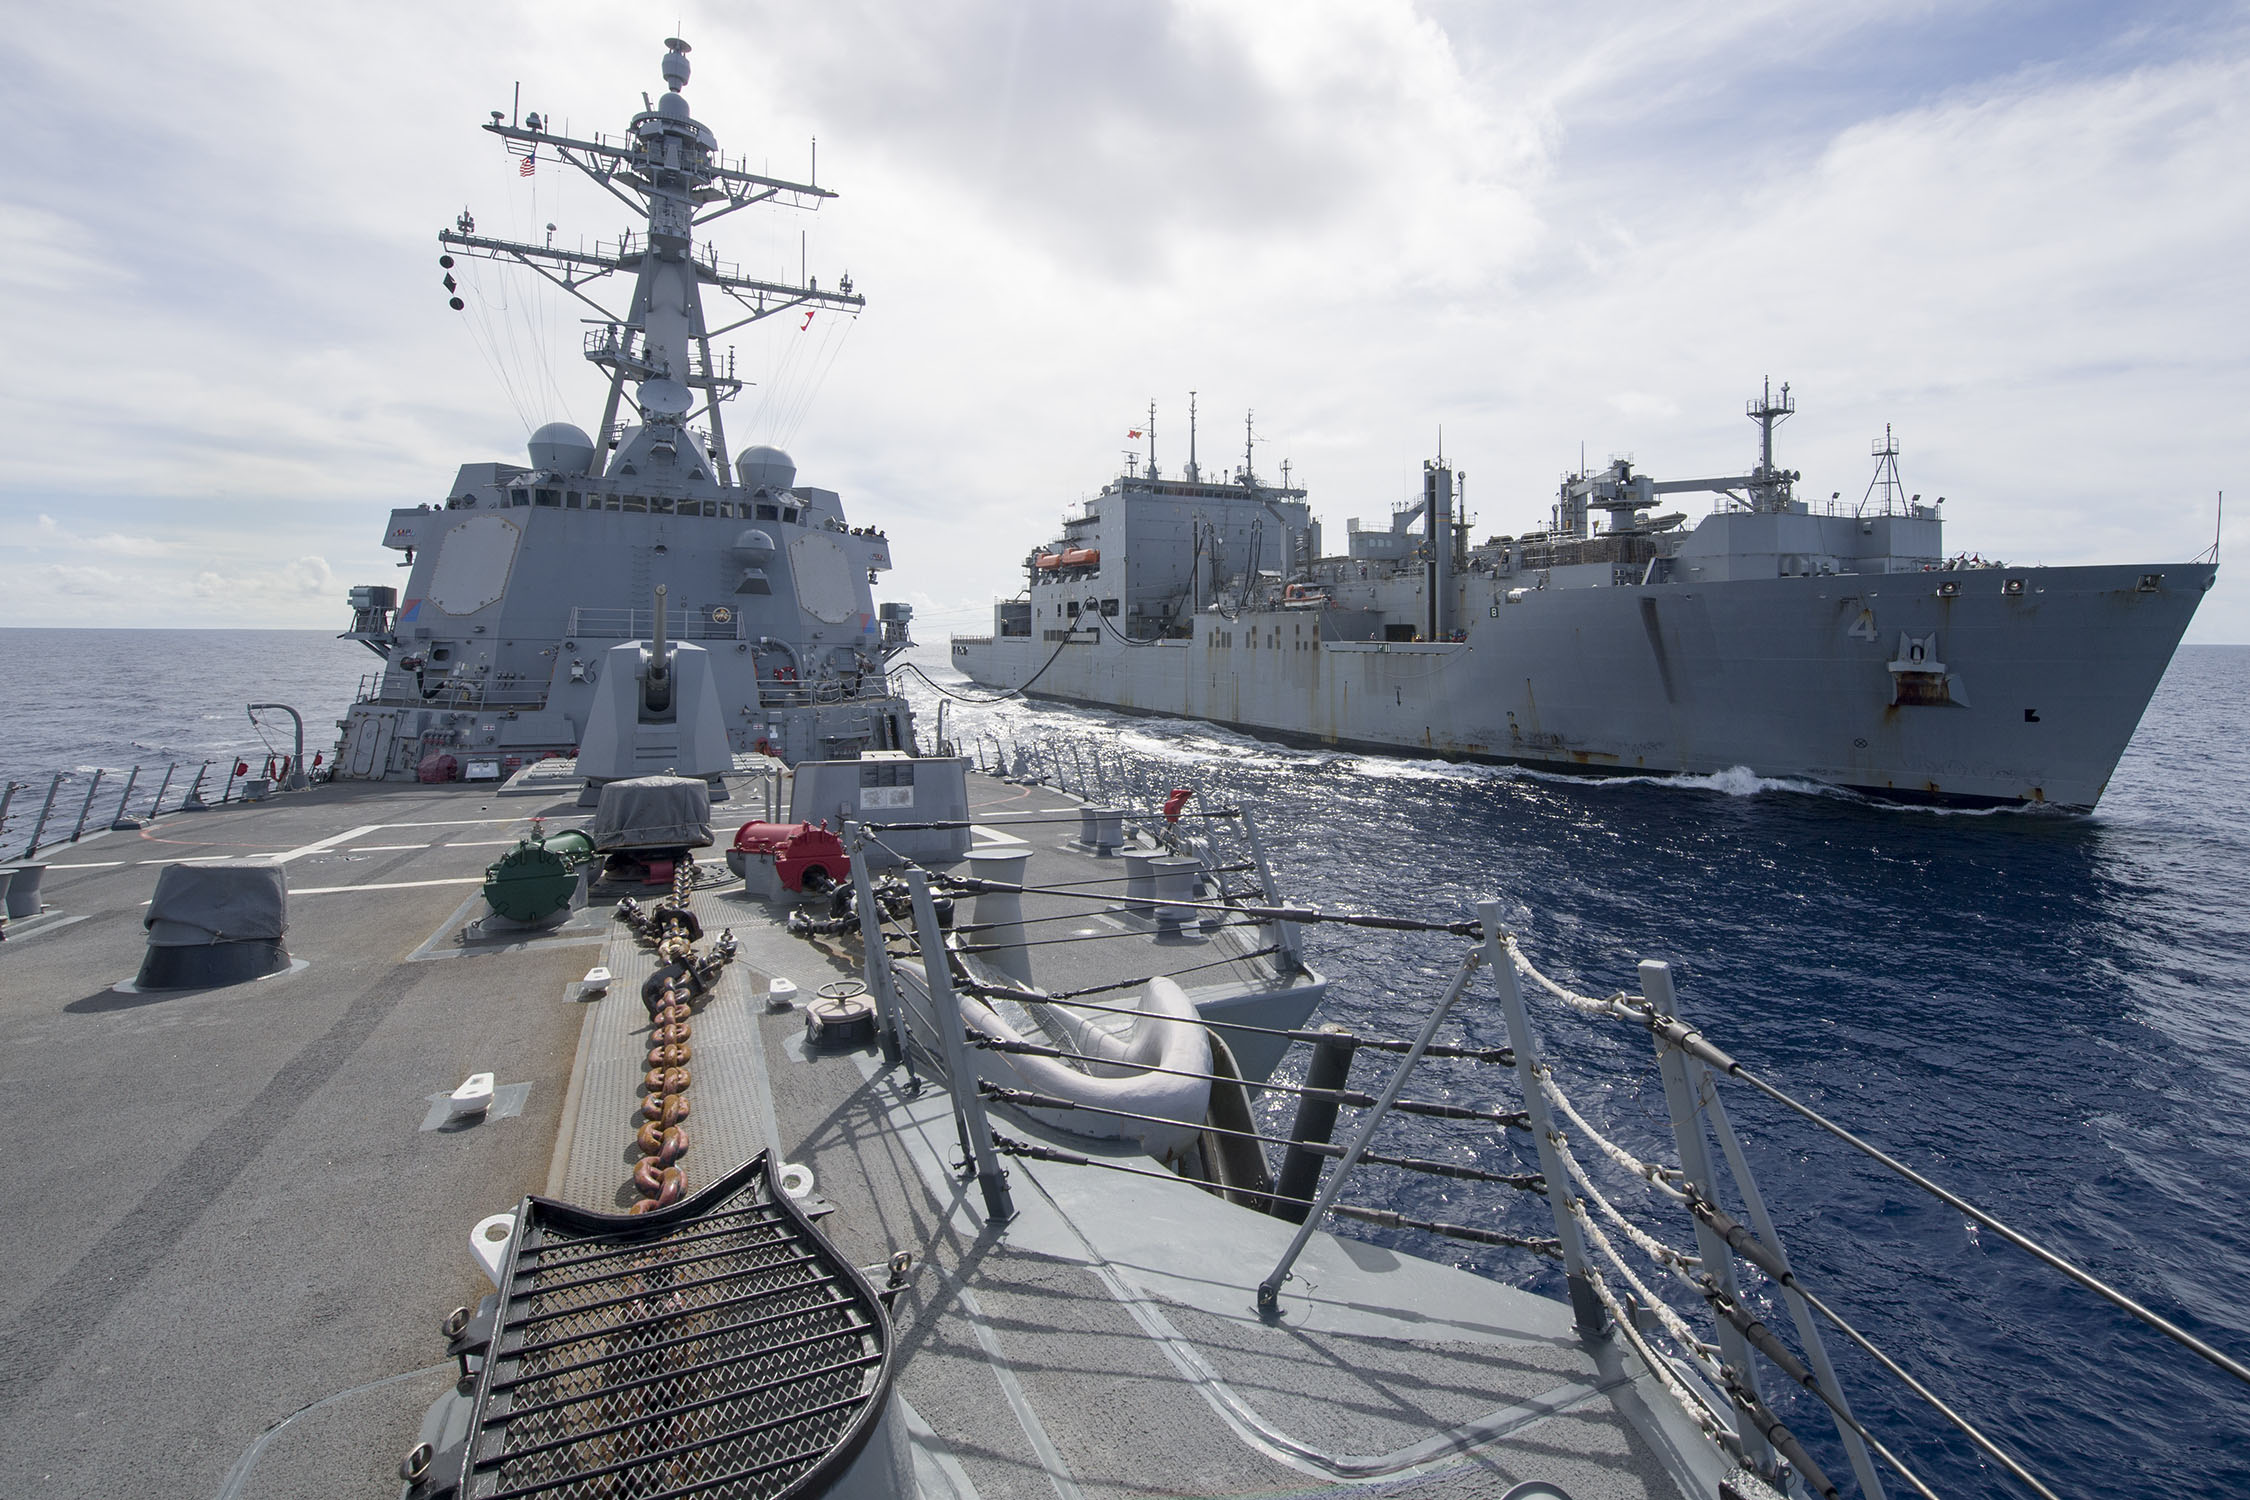 US Navy Ship in the South China Sea